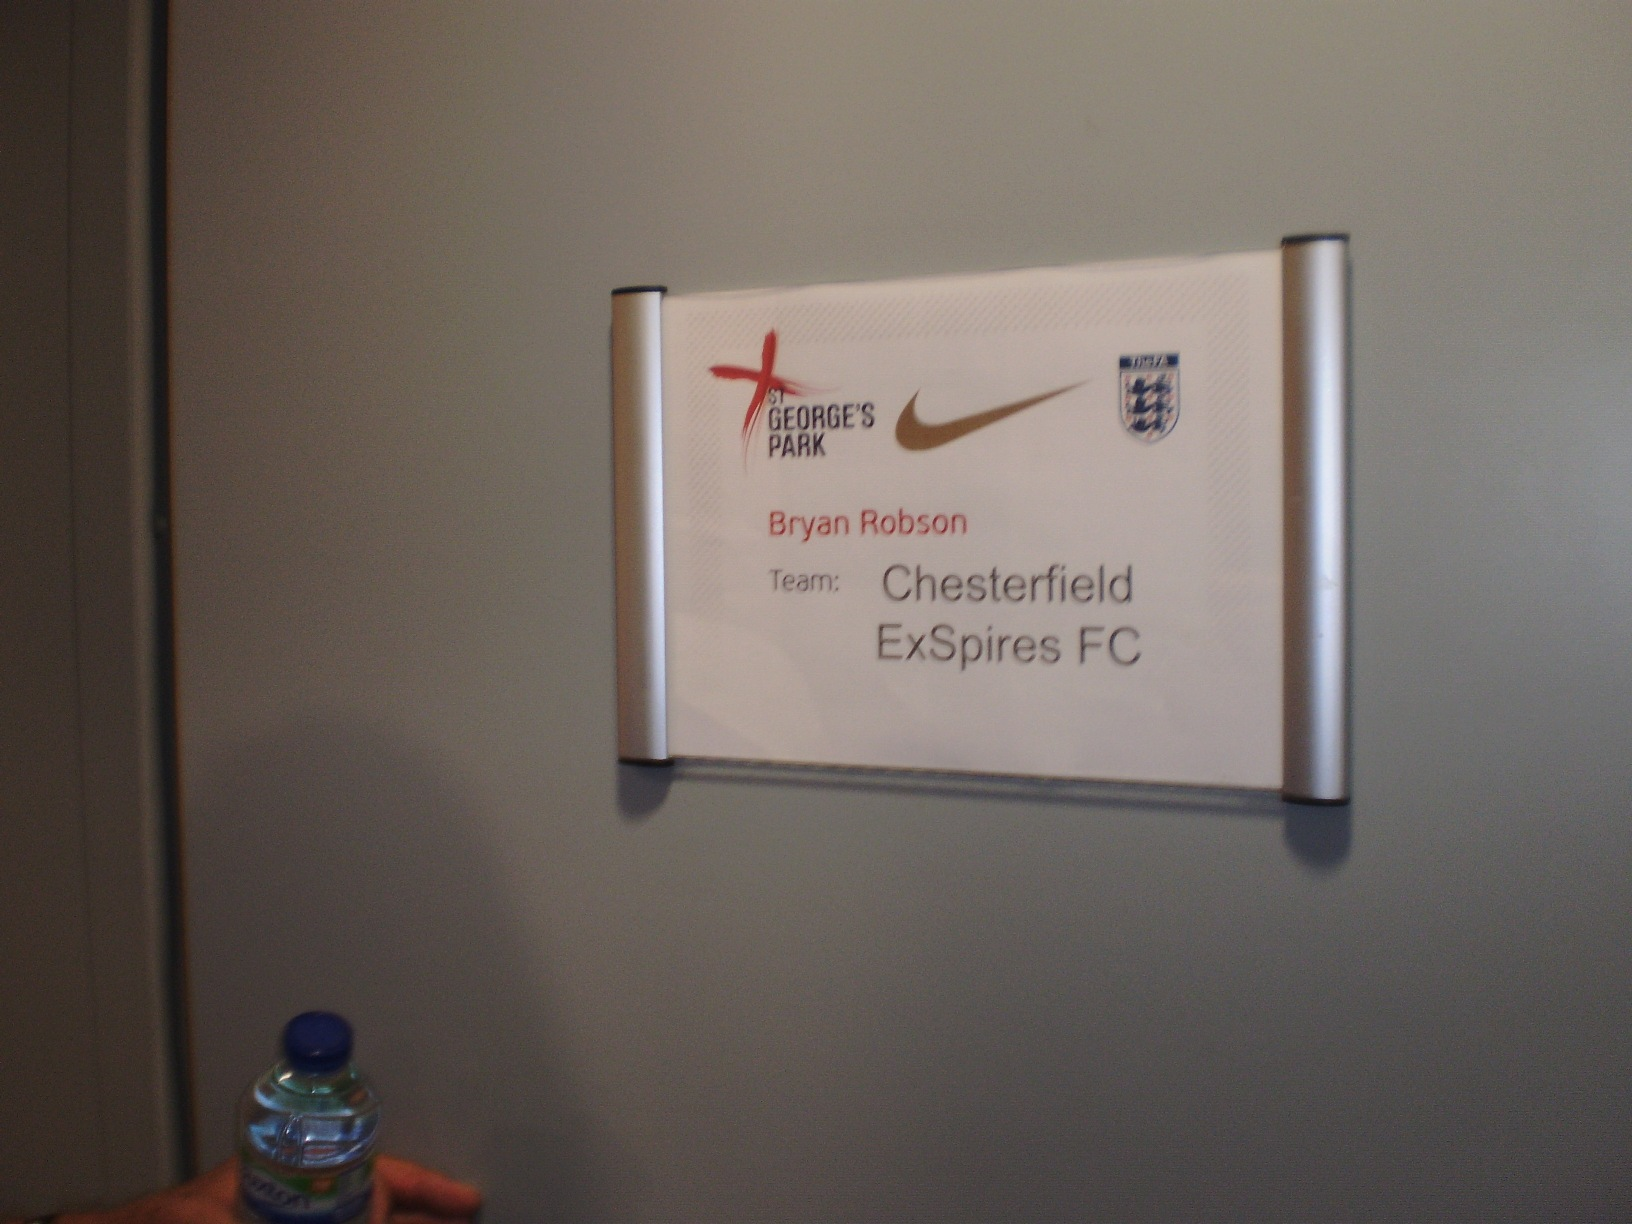 Chesterfield ExSpires visit to the FA at St. George's Park